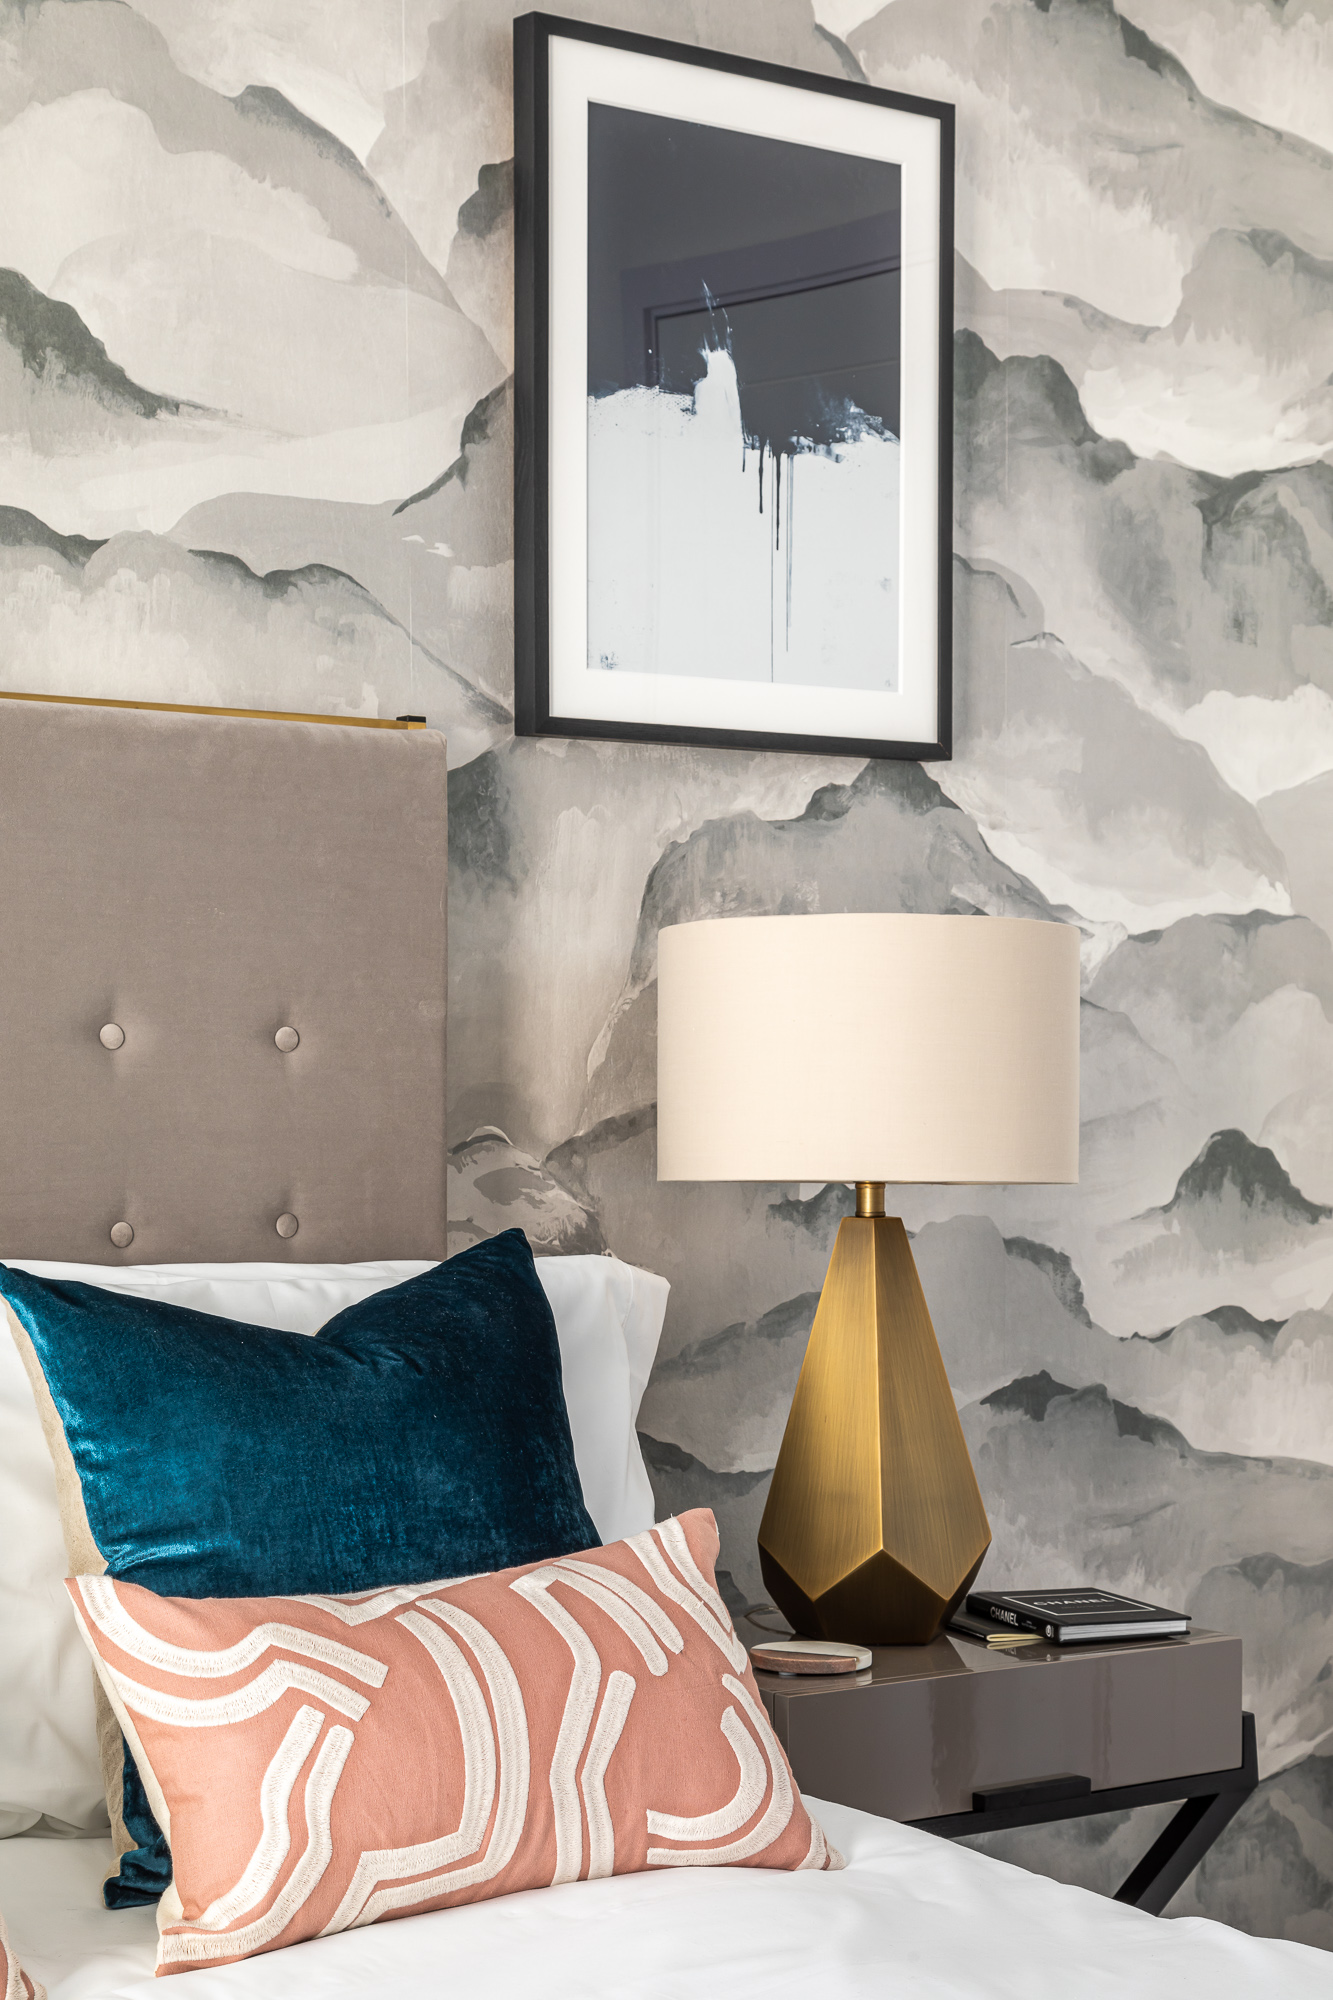 jonathan bond, interior photographer, bedroom scatter cushions bedside lamp, putney london